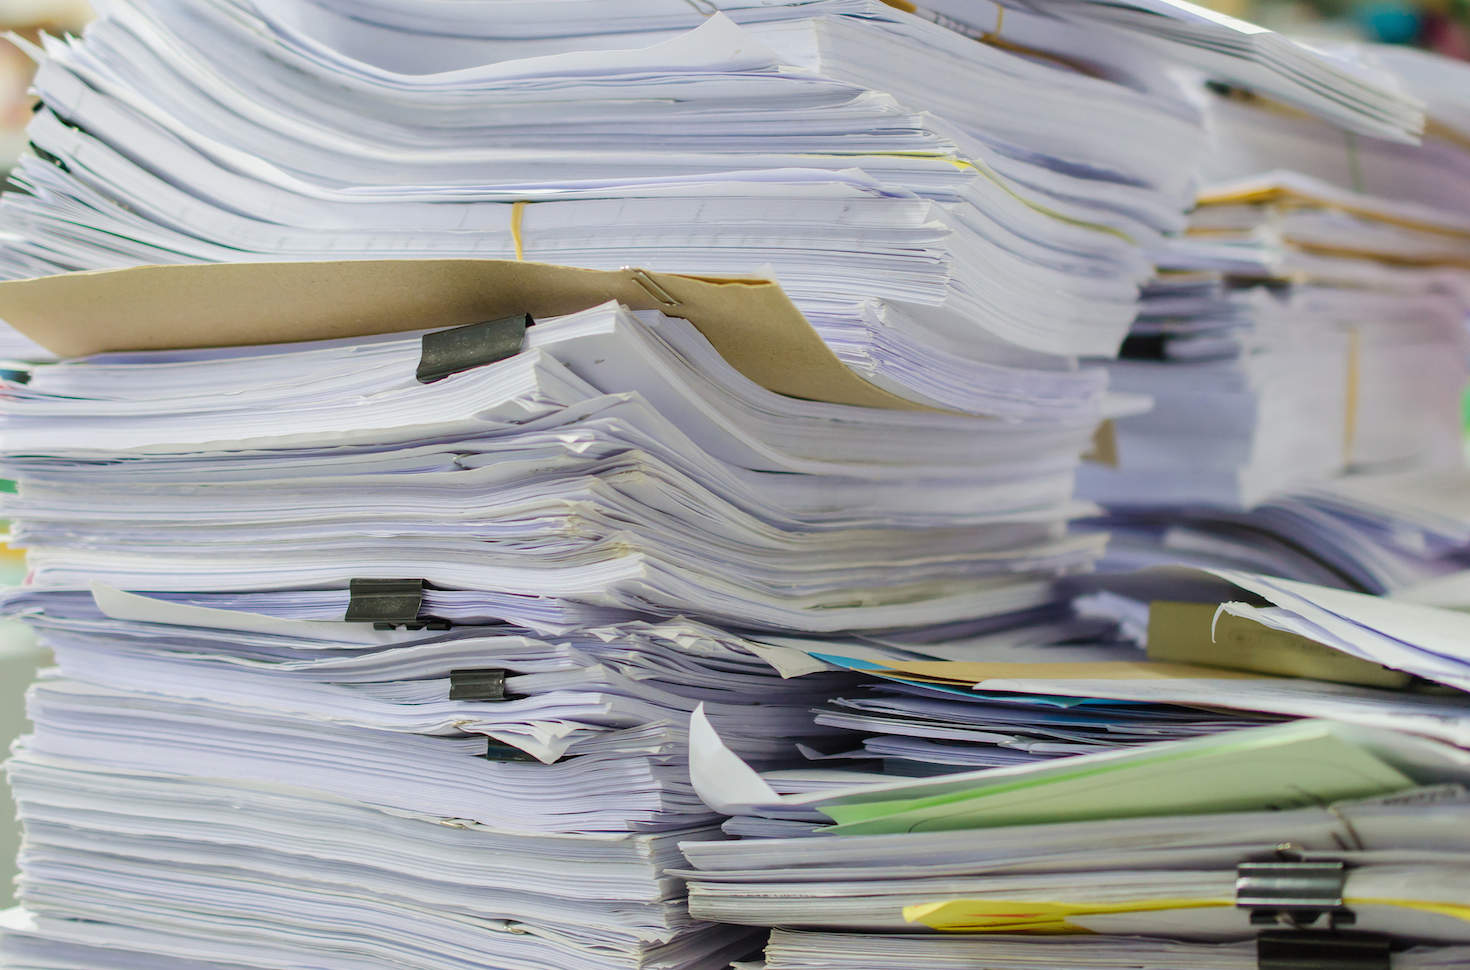 Piles of printed documents